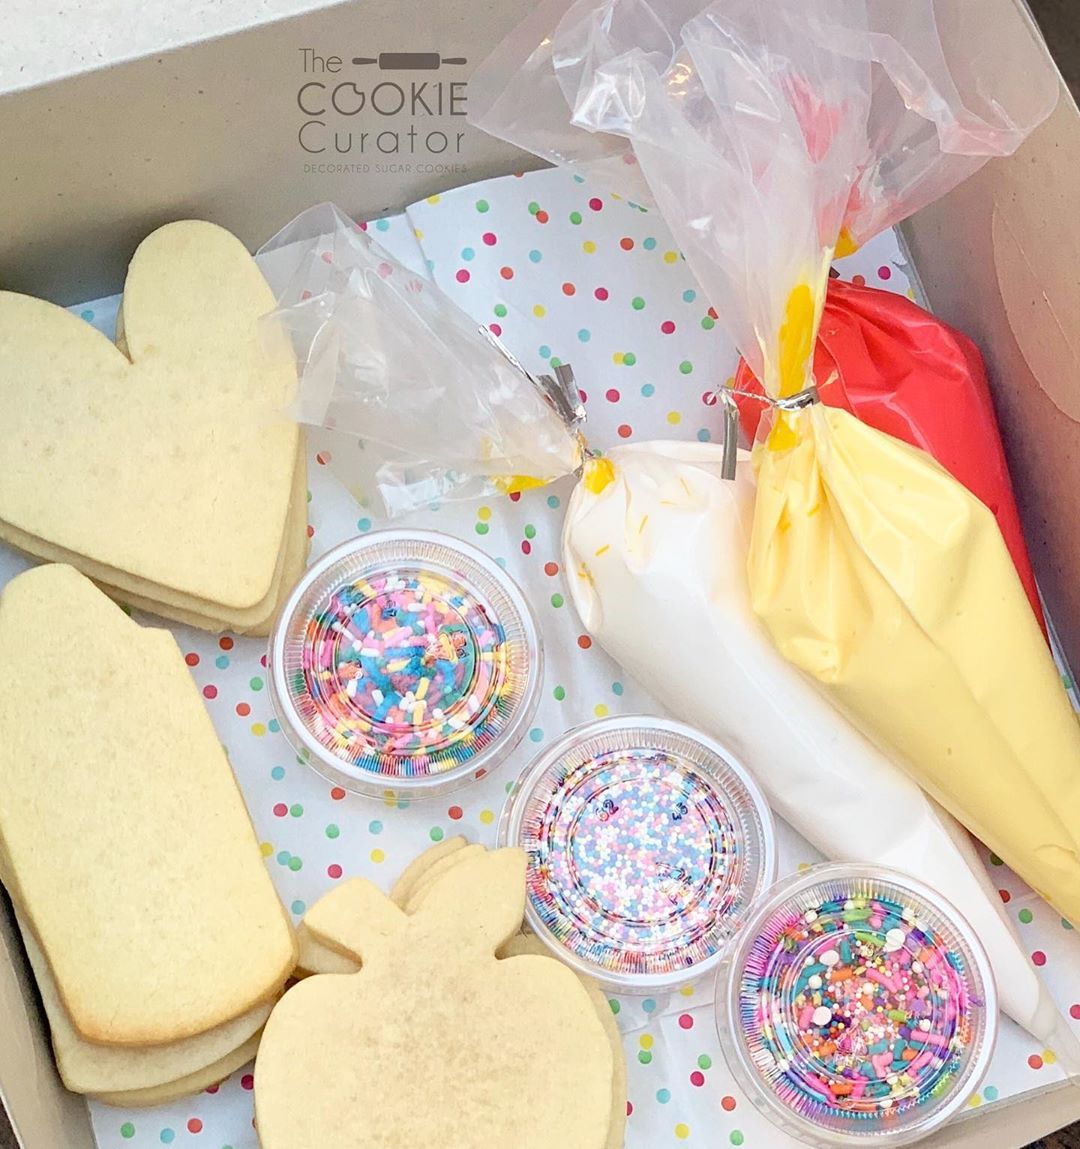 Pin on Cookie decorating kits